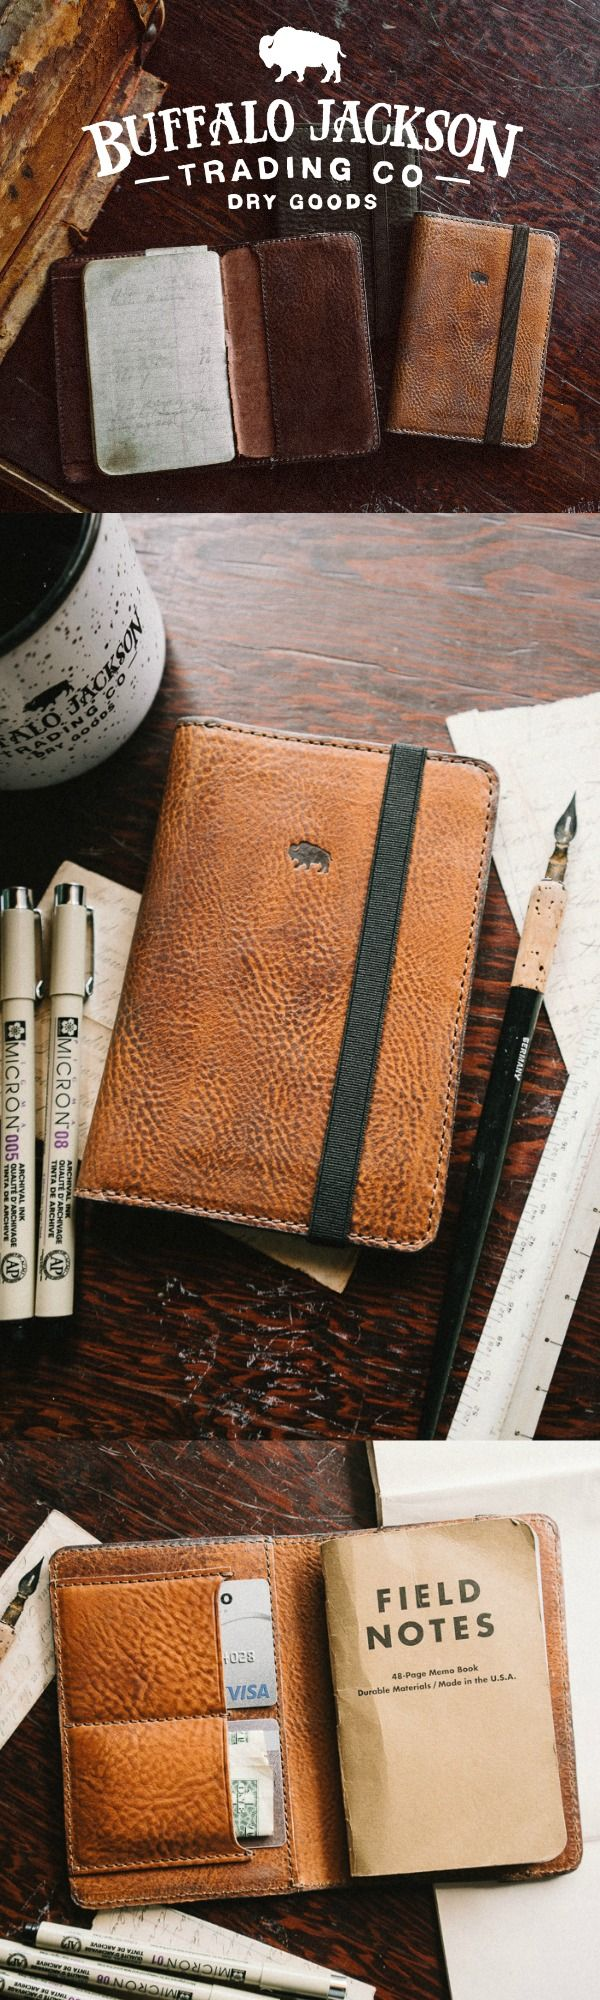 The Dakota vintage leather field notes cover / wallet. Outfitted with an elastic strap to keep your journal and its contents snug. Creative gift for him - for work or travel, business or adventure. Available in saddle tan, brown, and black.